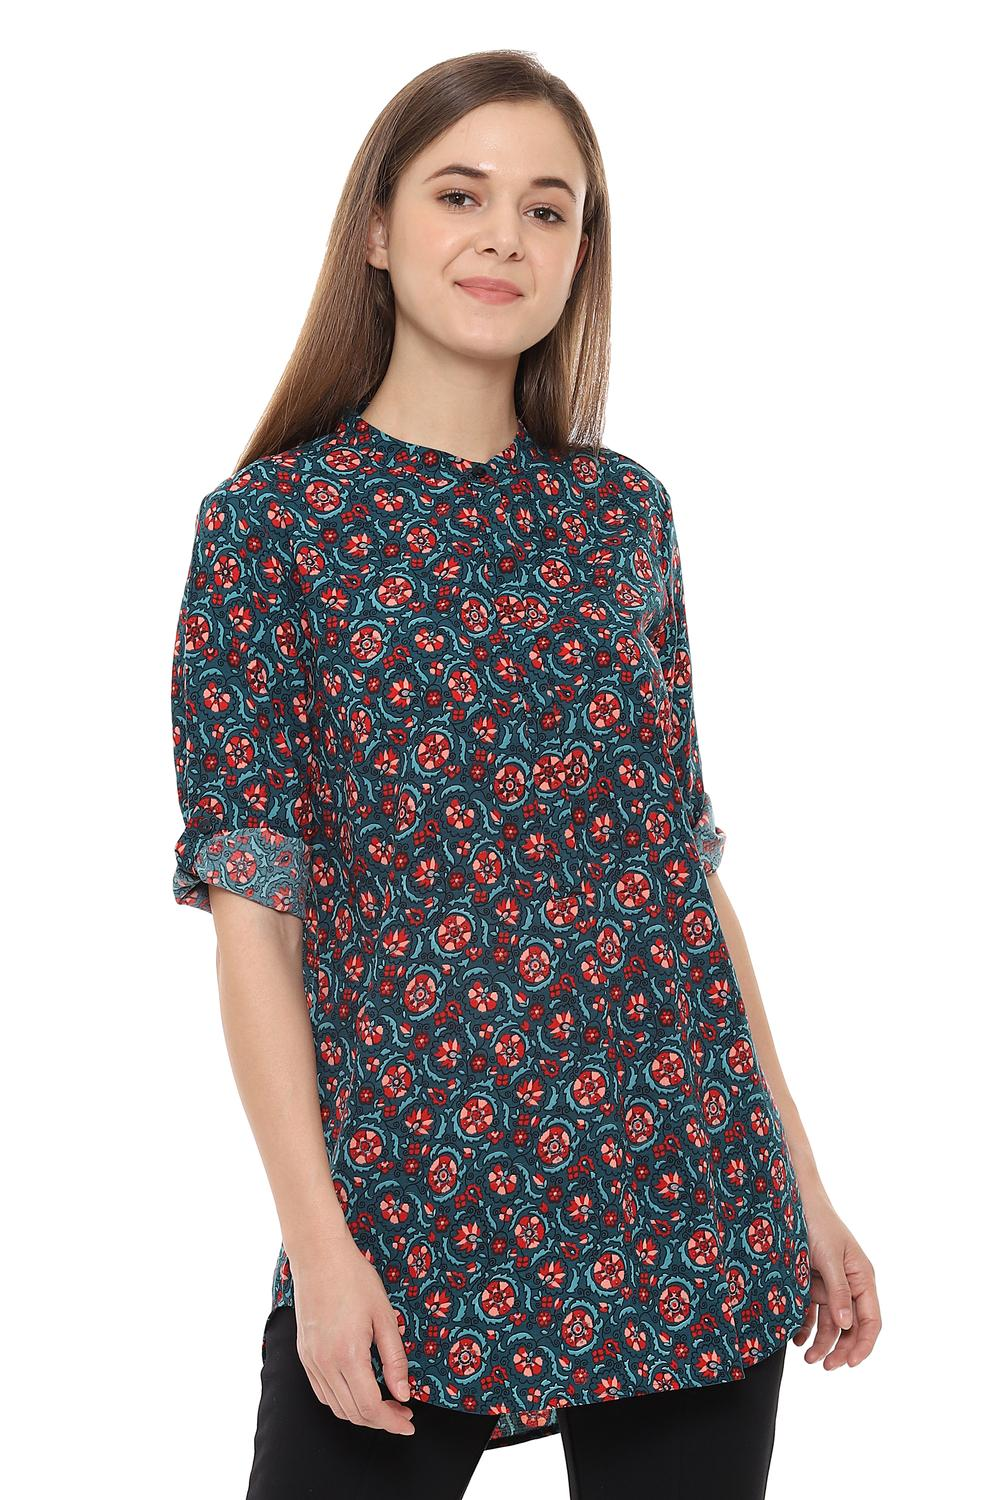 c6cb67c54b Solly Tunics, Allen Solly Red Tunic for Women at Allensolly.com